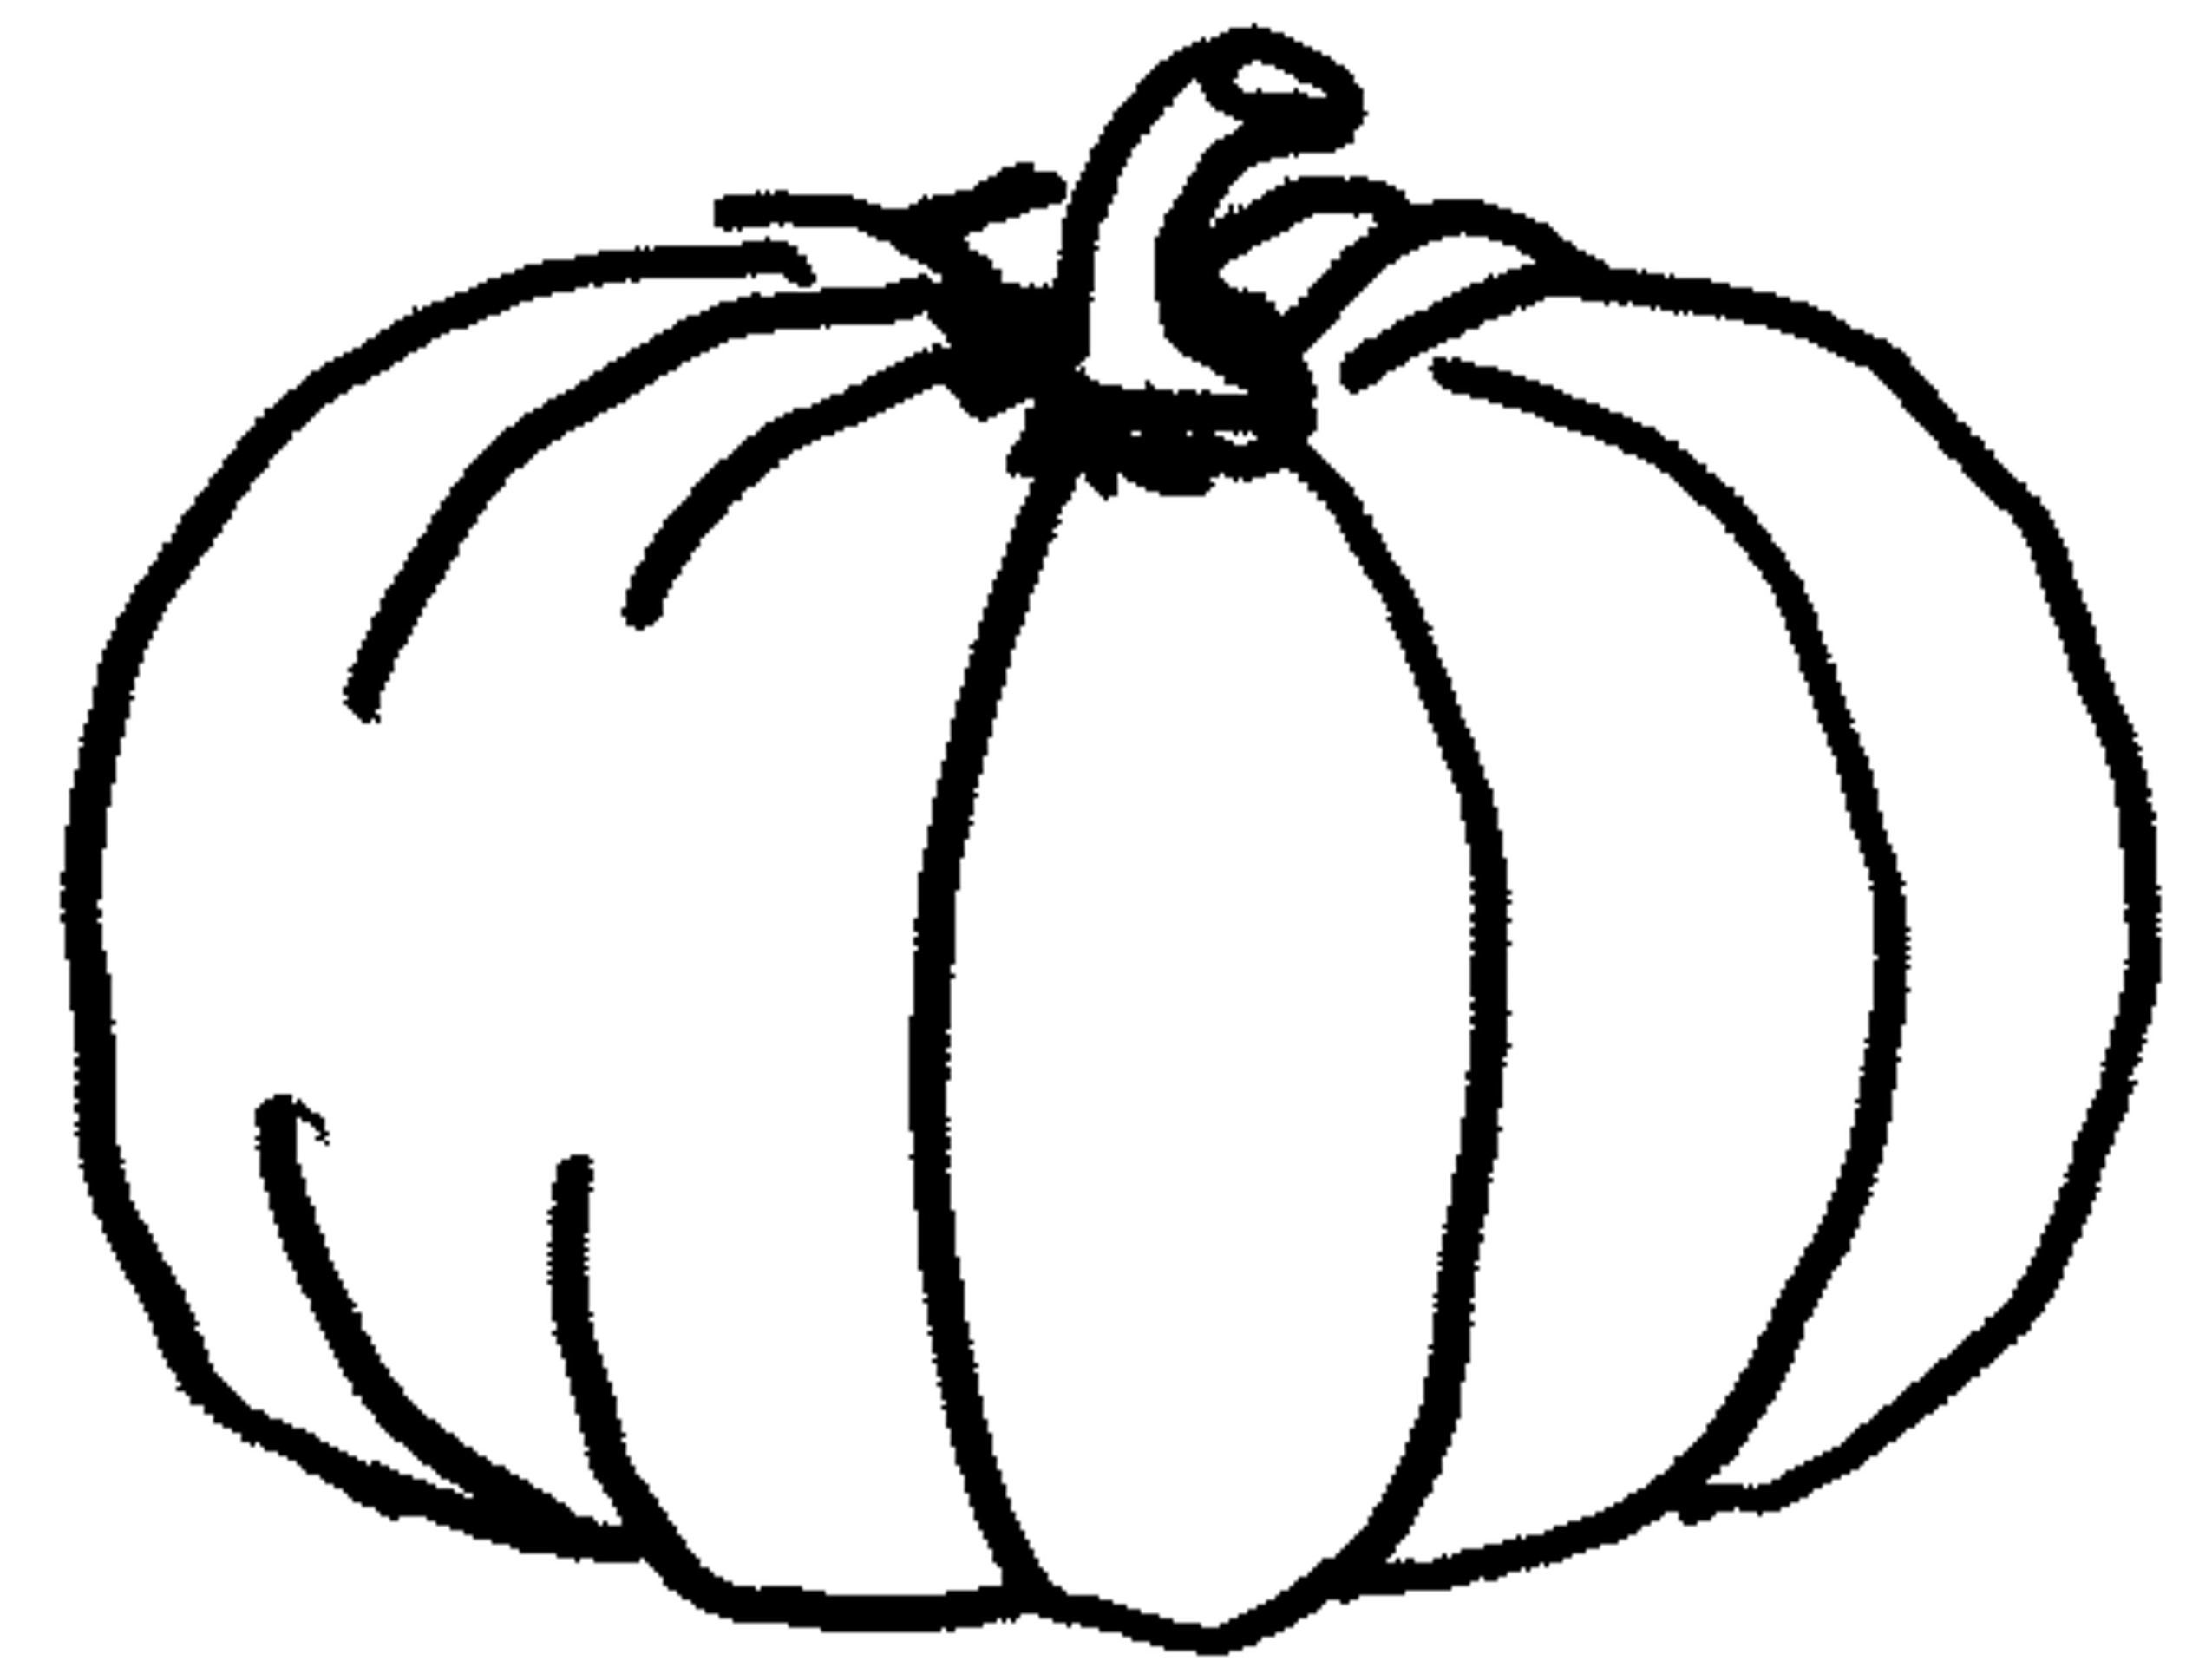 Pumpkin coloring pages for kids - Preschool Easy Fall Pumpkin Coloring Pages Printable Printable